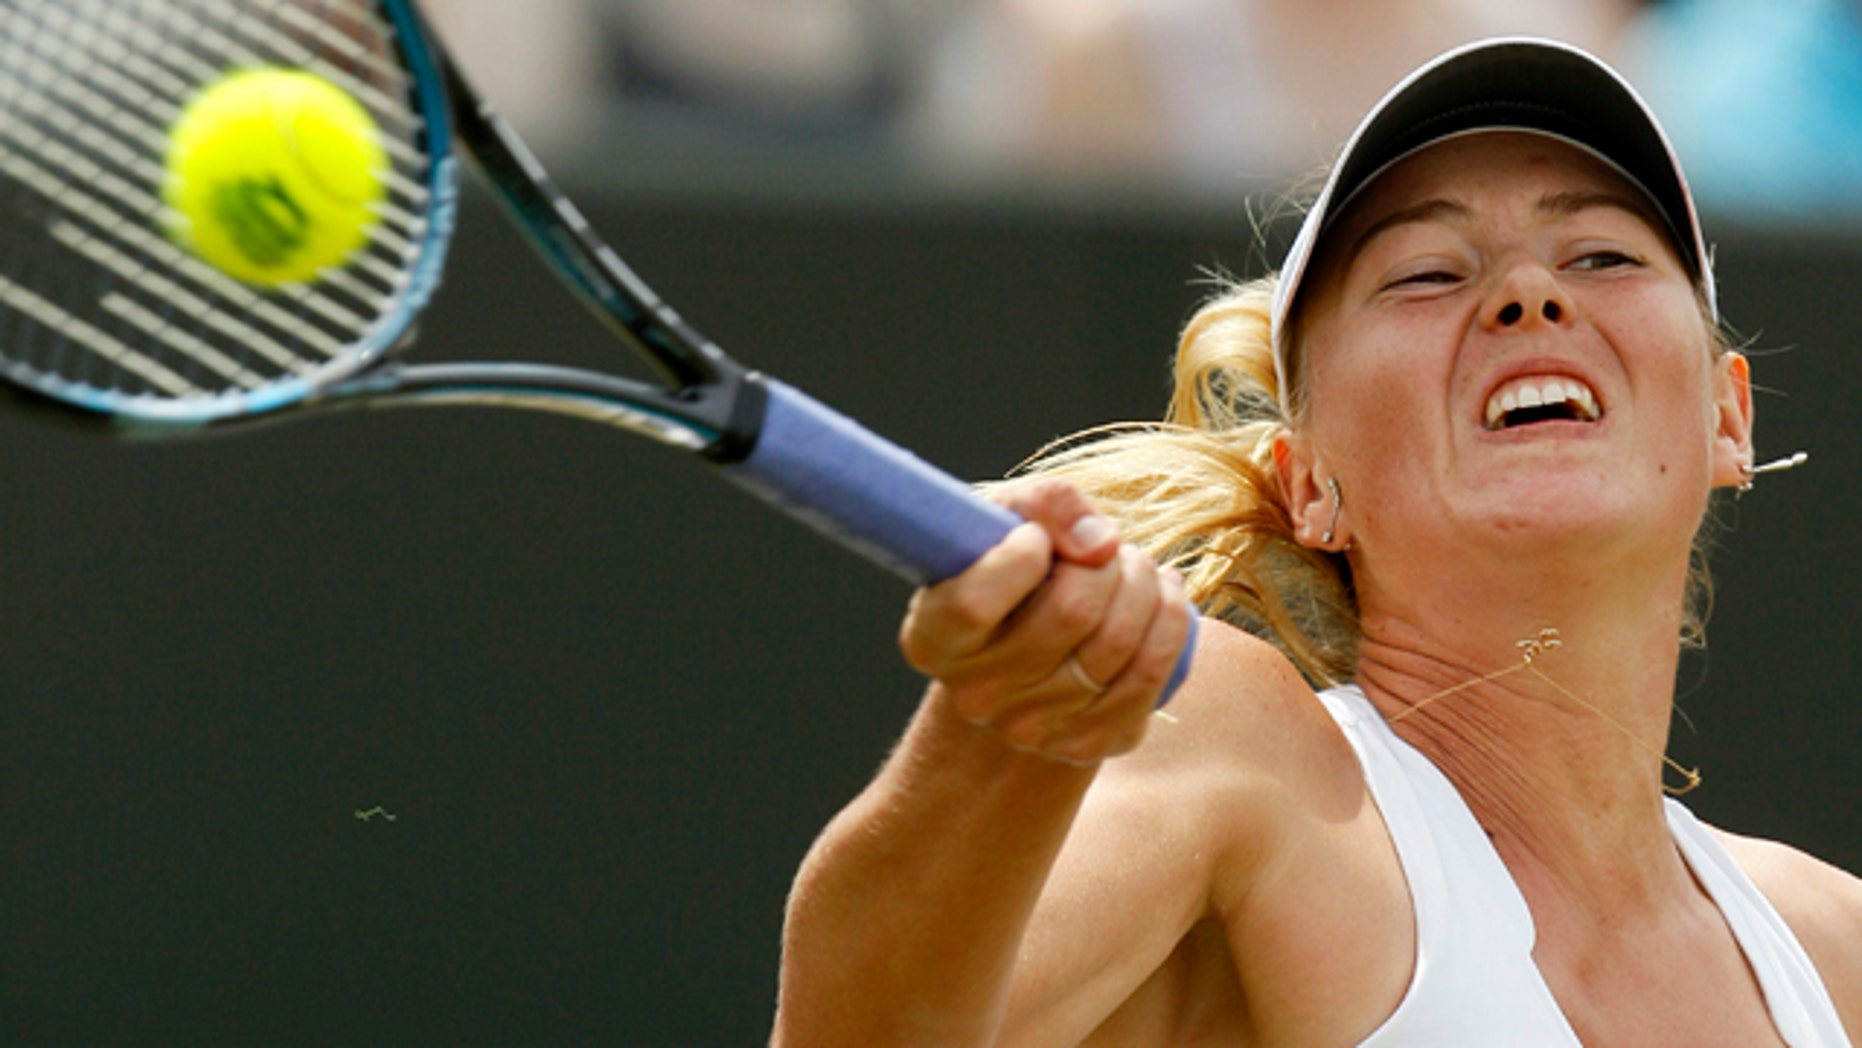 A notorious grunter, Russia's Maria Sharapova delivered the loudest recorded grunt -- 105 decibels -- in 2009.